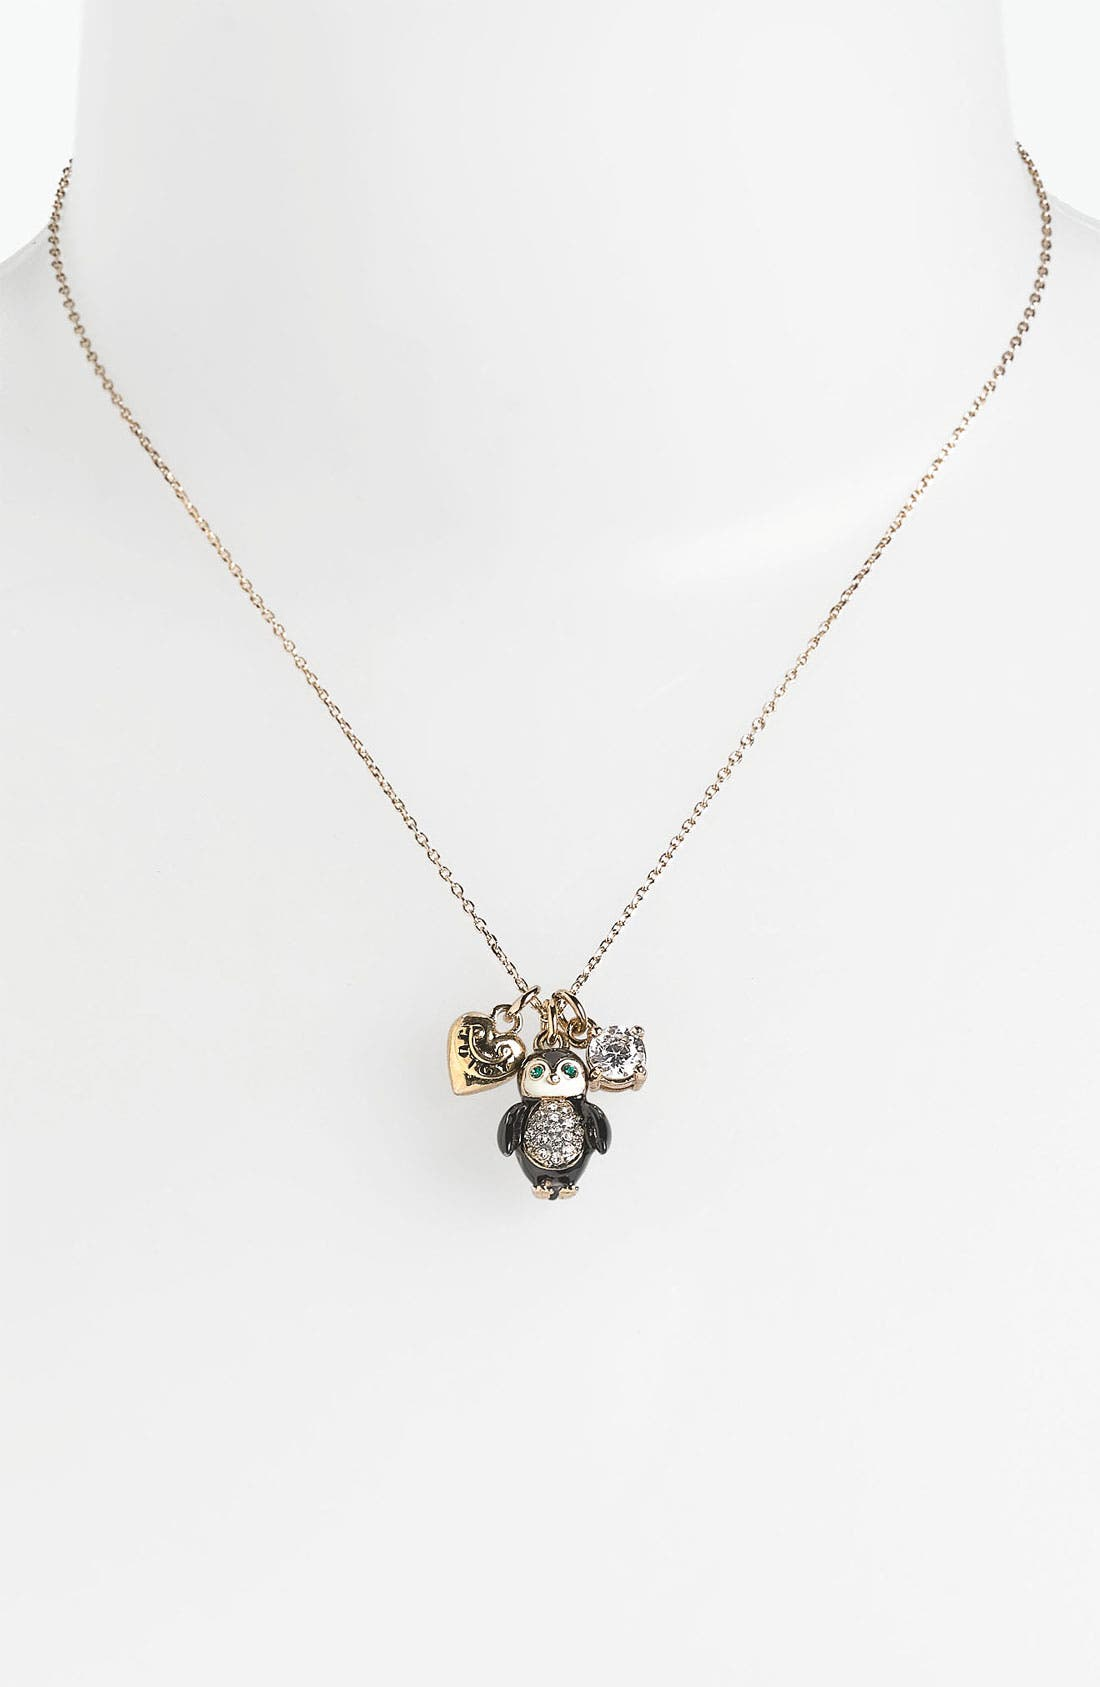 Main Image - Juicy Couture 'Perfectly Gifted' Boxed Pendant Necklace